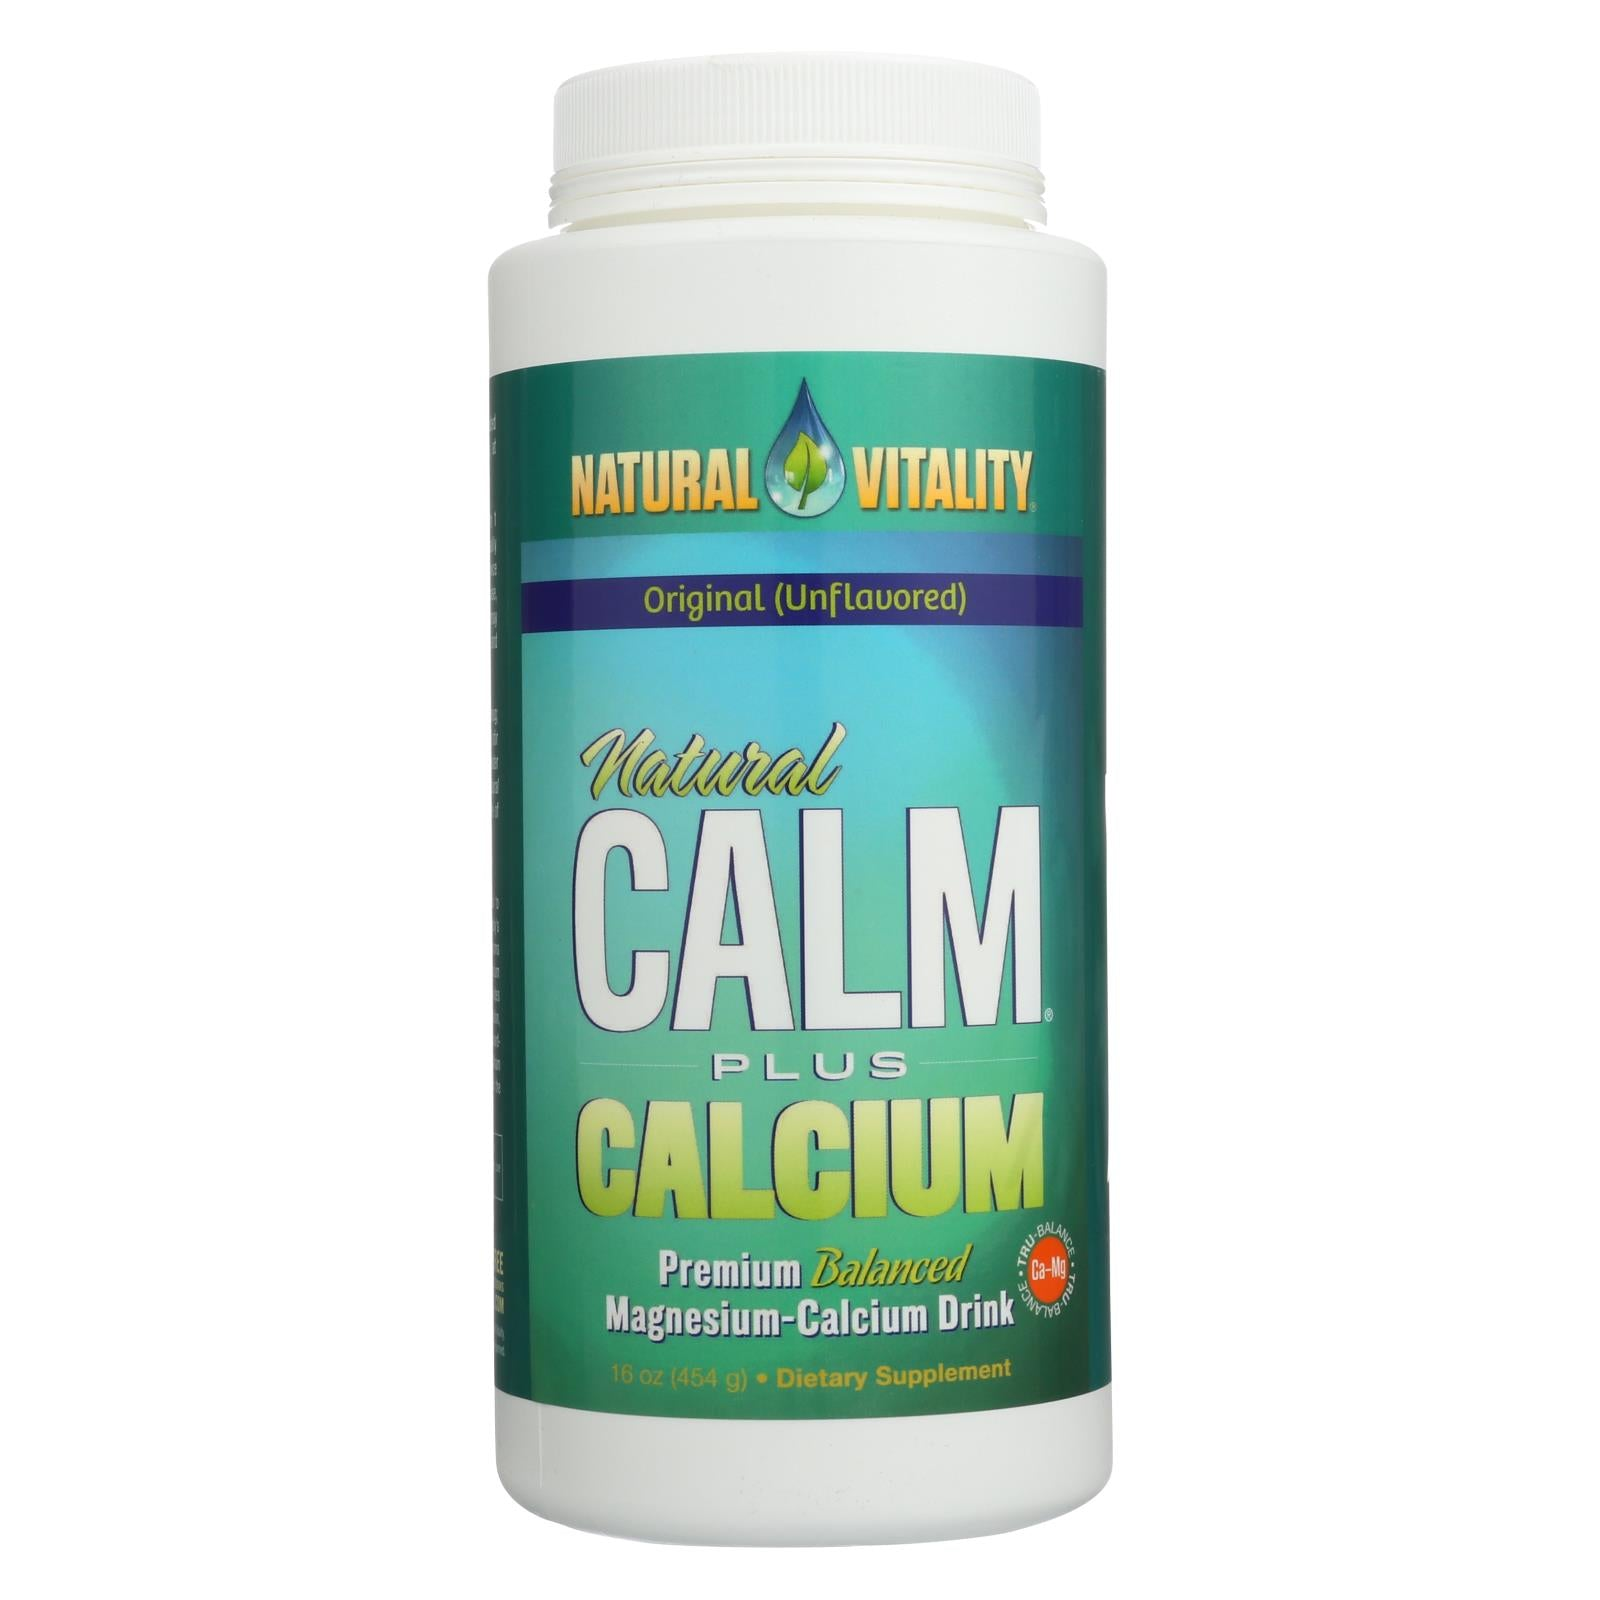 Natural Calm Plus Calcium Reviews